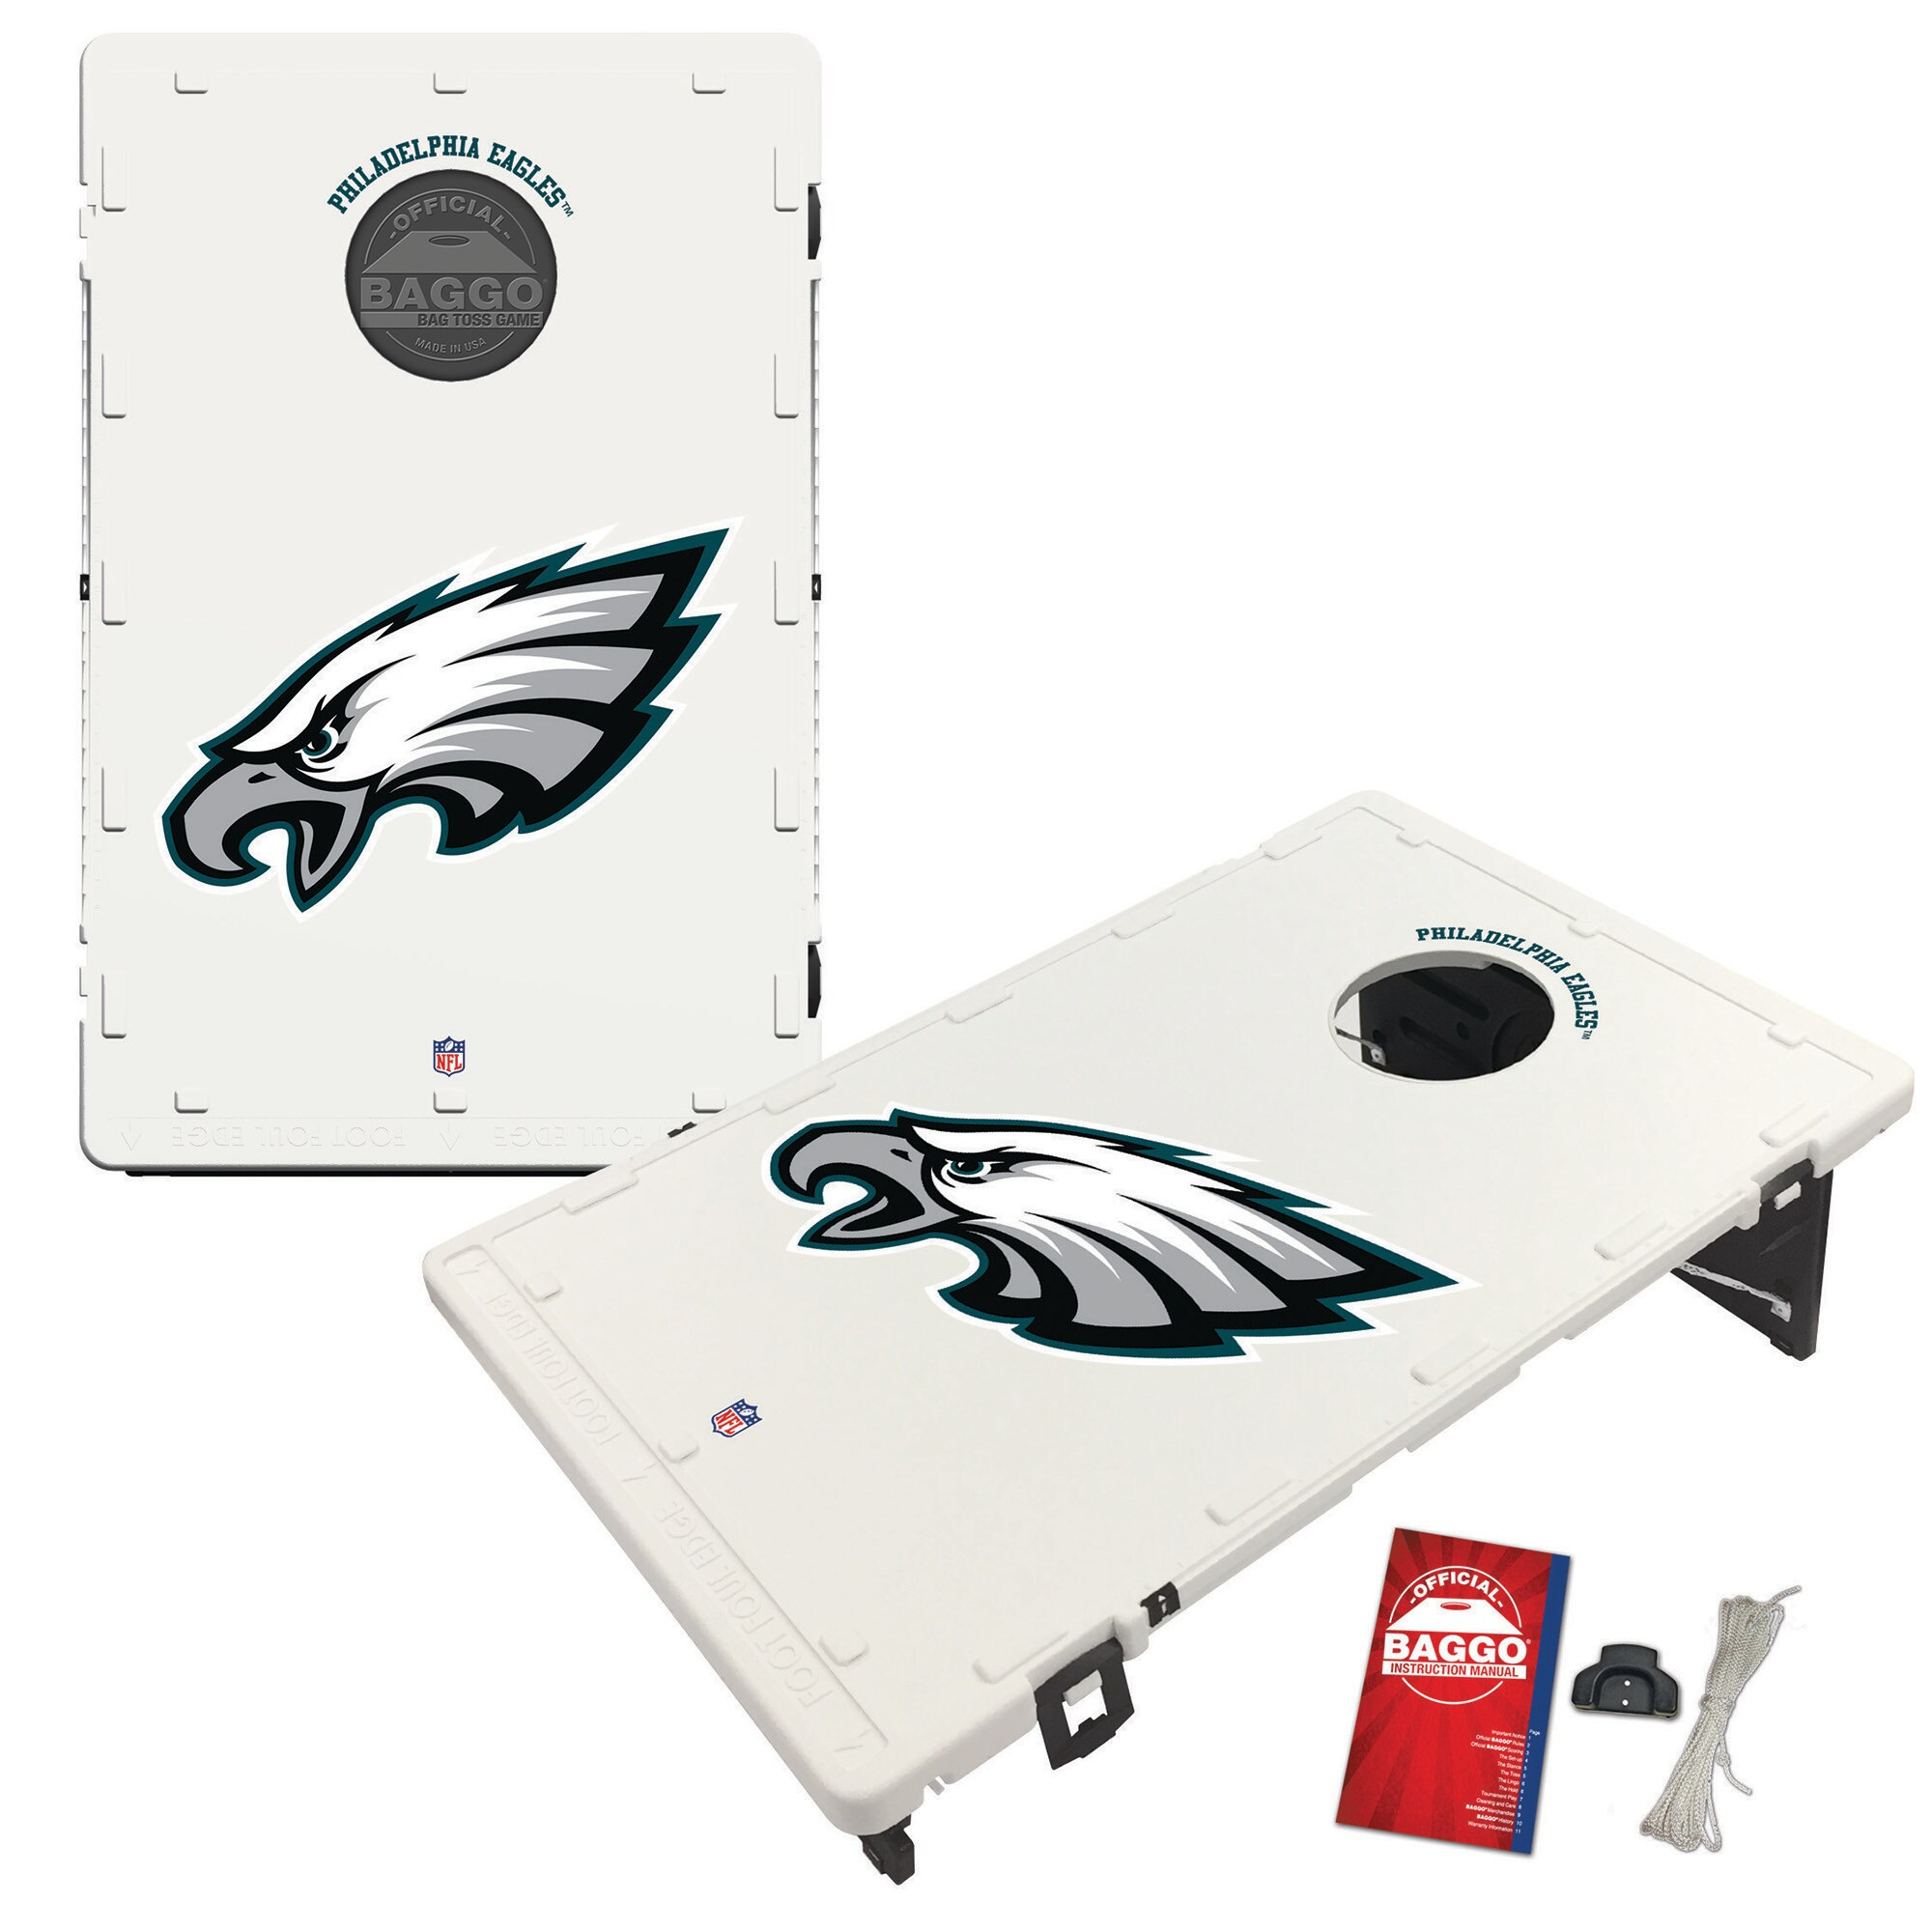 Philadelphia Eagles 2' x 3' Classic Design BAGGO Cornhole Board Tailgate Toss Set